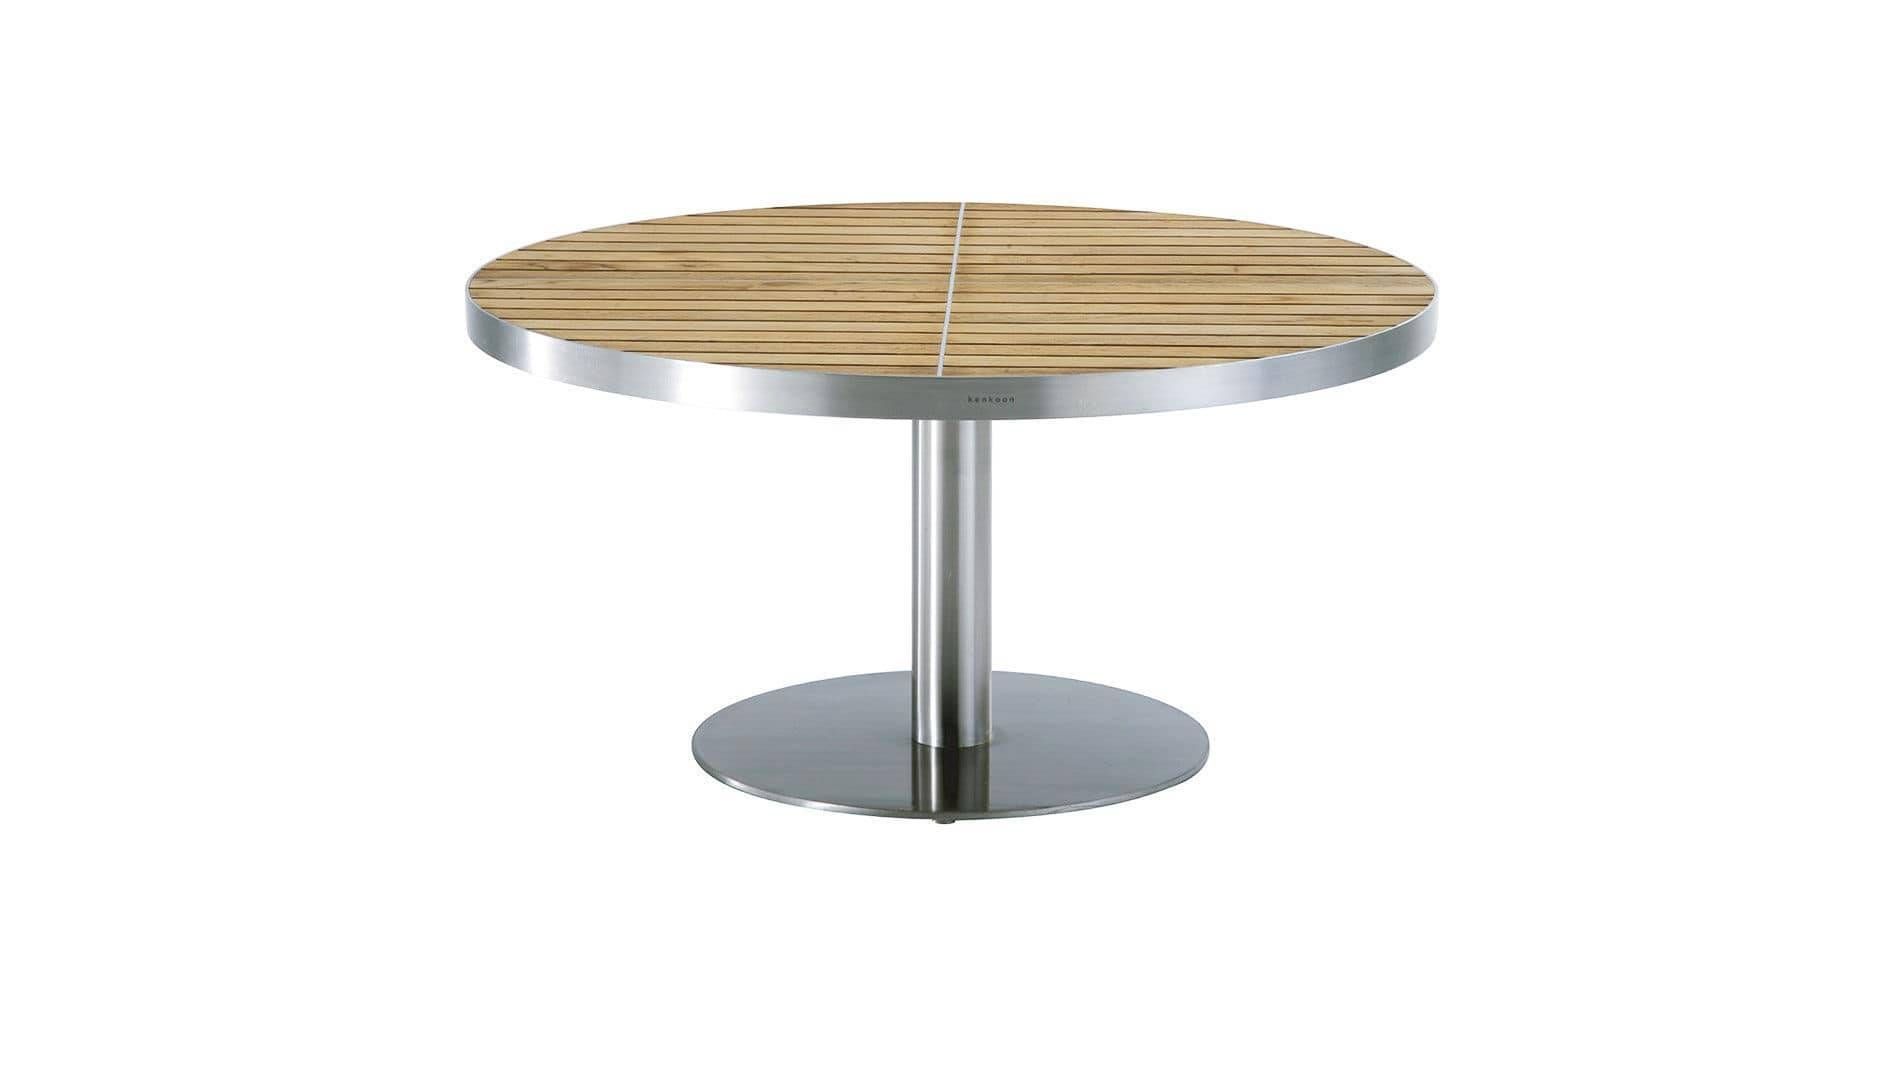 Contemporary Coffee Table / Teak / Stainless Steel / Round - Kurf intended for Contemporary Coffee Table (Image 9 of 30)